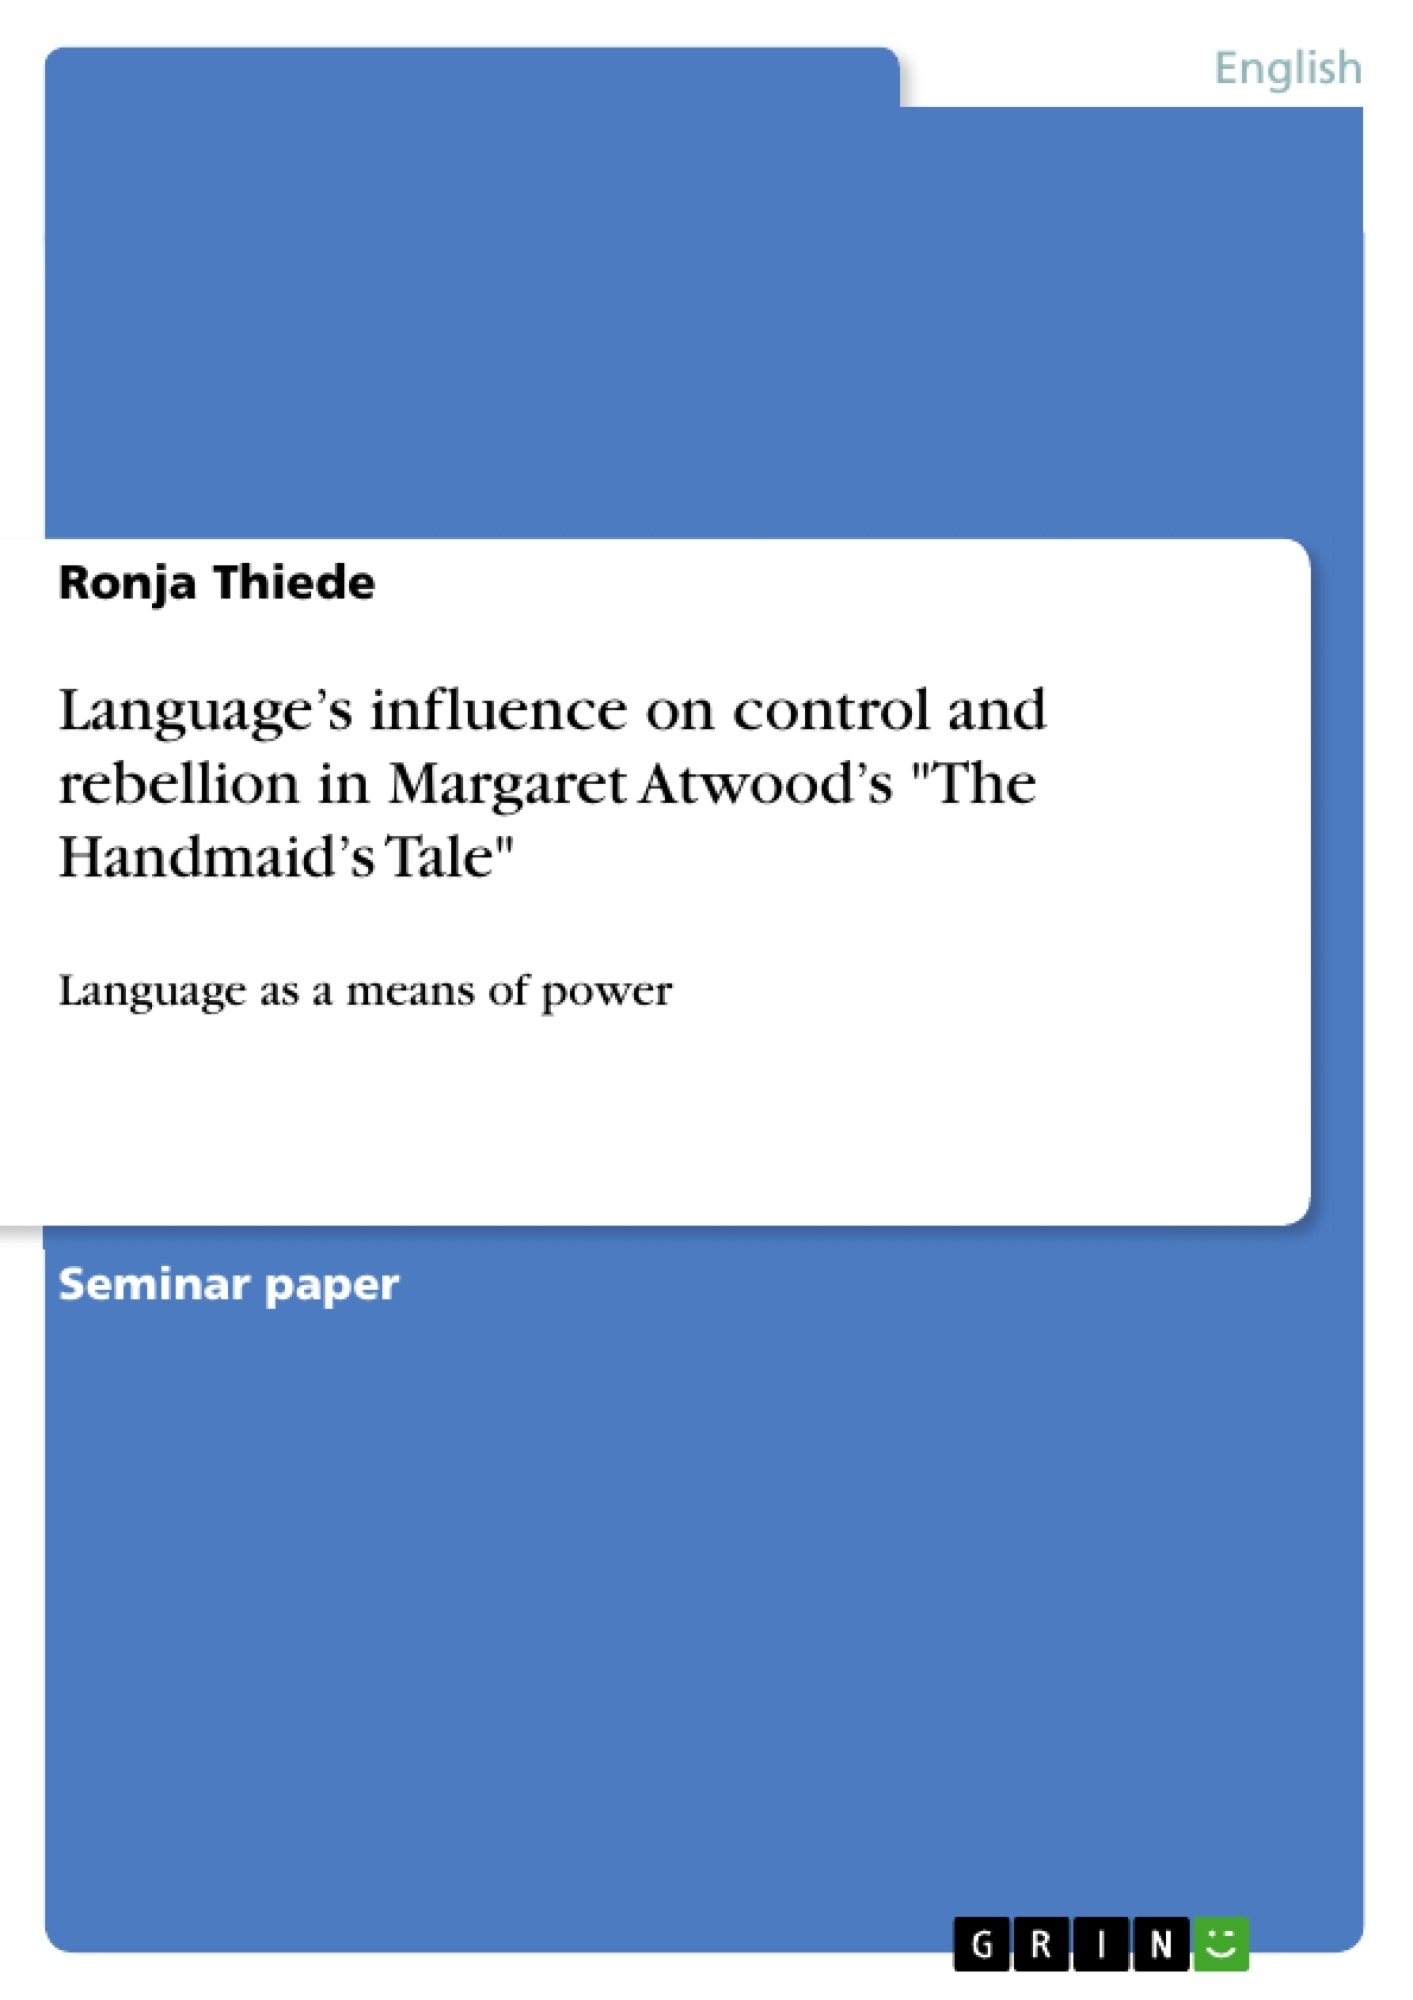 """Title: Language's influence on control and rebellion in Margaret Atwood's """"The Handmaid's Tale"""""""